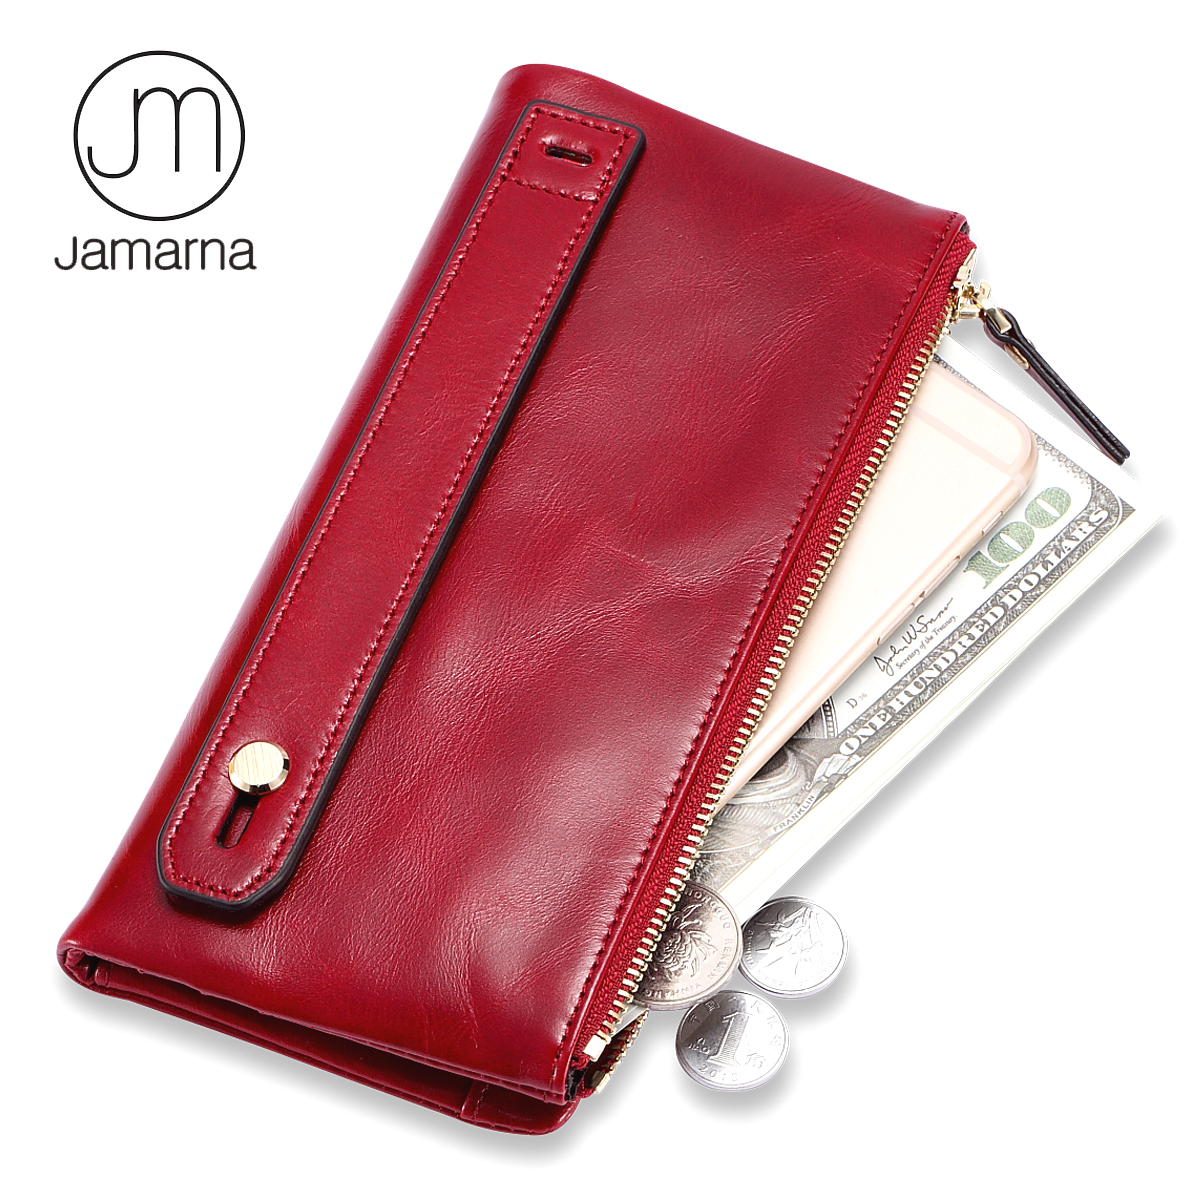 Jamarna Purse Genuine Leather Wallet Female Long Clutch Women Purse With Coin Pocket Women Wallets With Card Holders Purse Women women wallets long purse women famous designer brand luxury female purse ladies coin purse card holders clutch